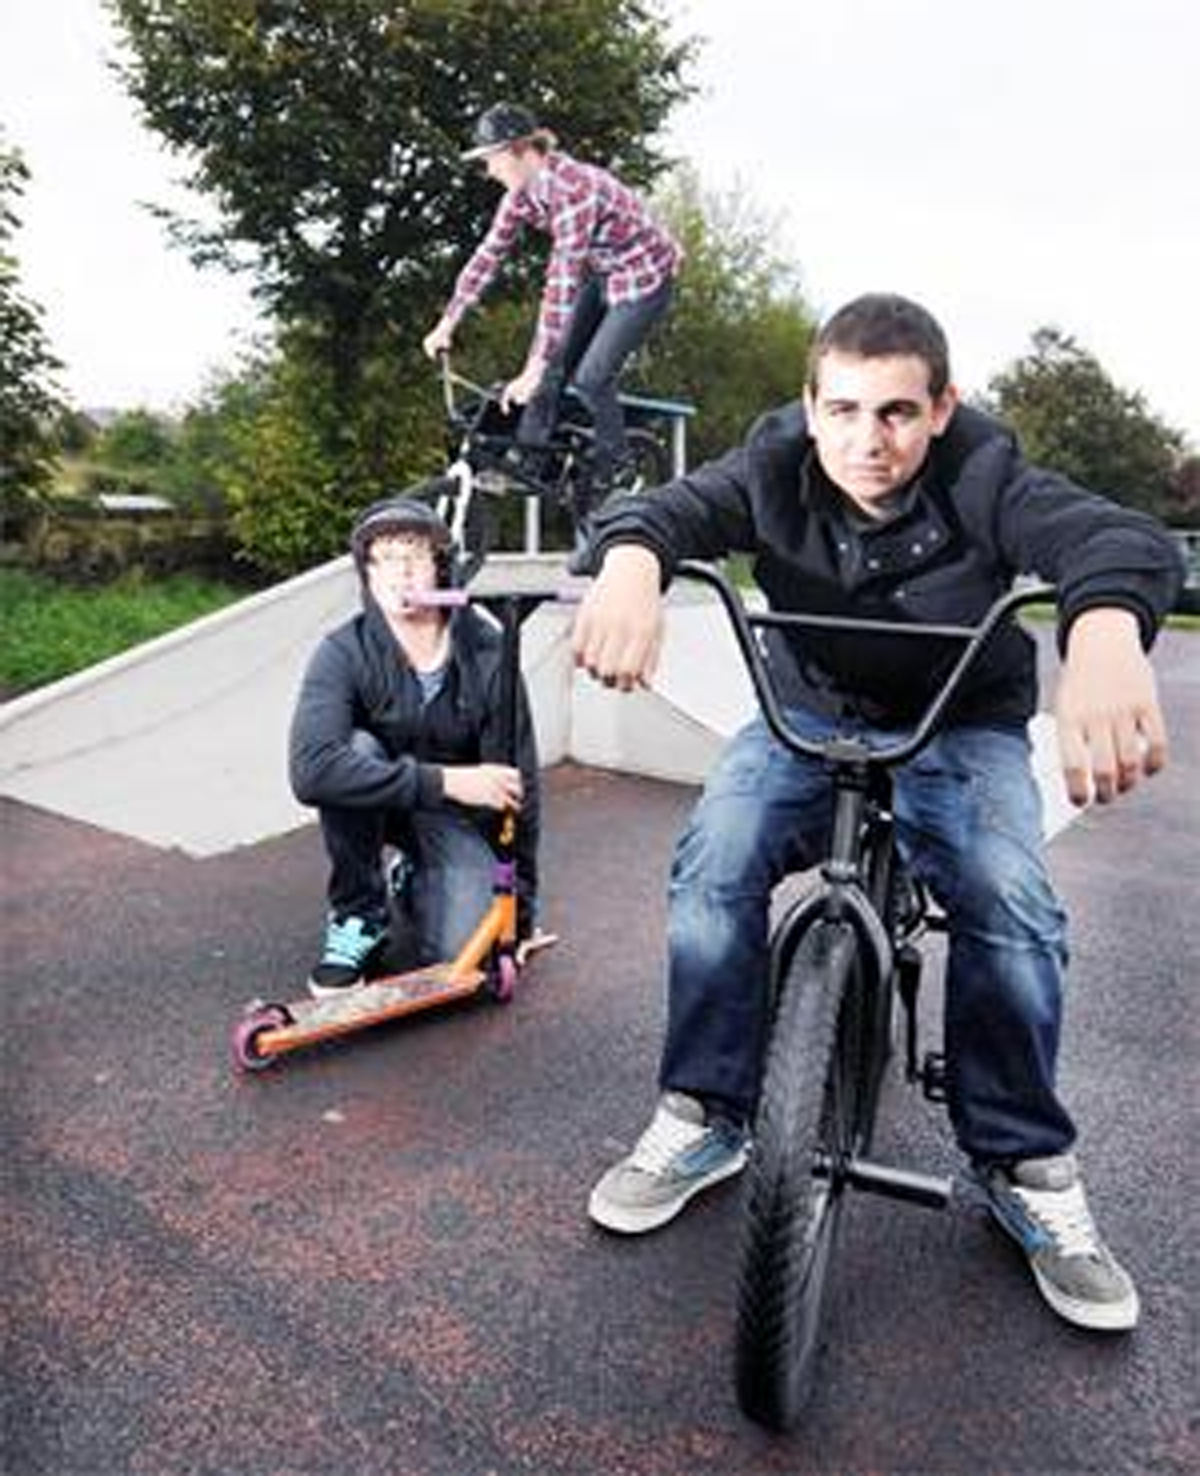 Michele Melia (right) who tried for the skate park